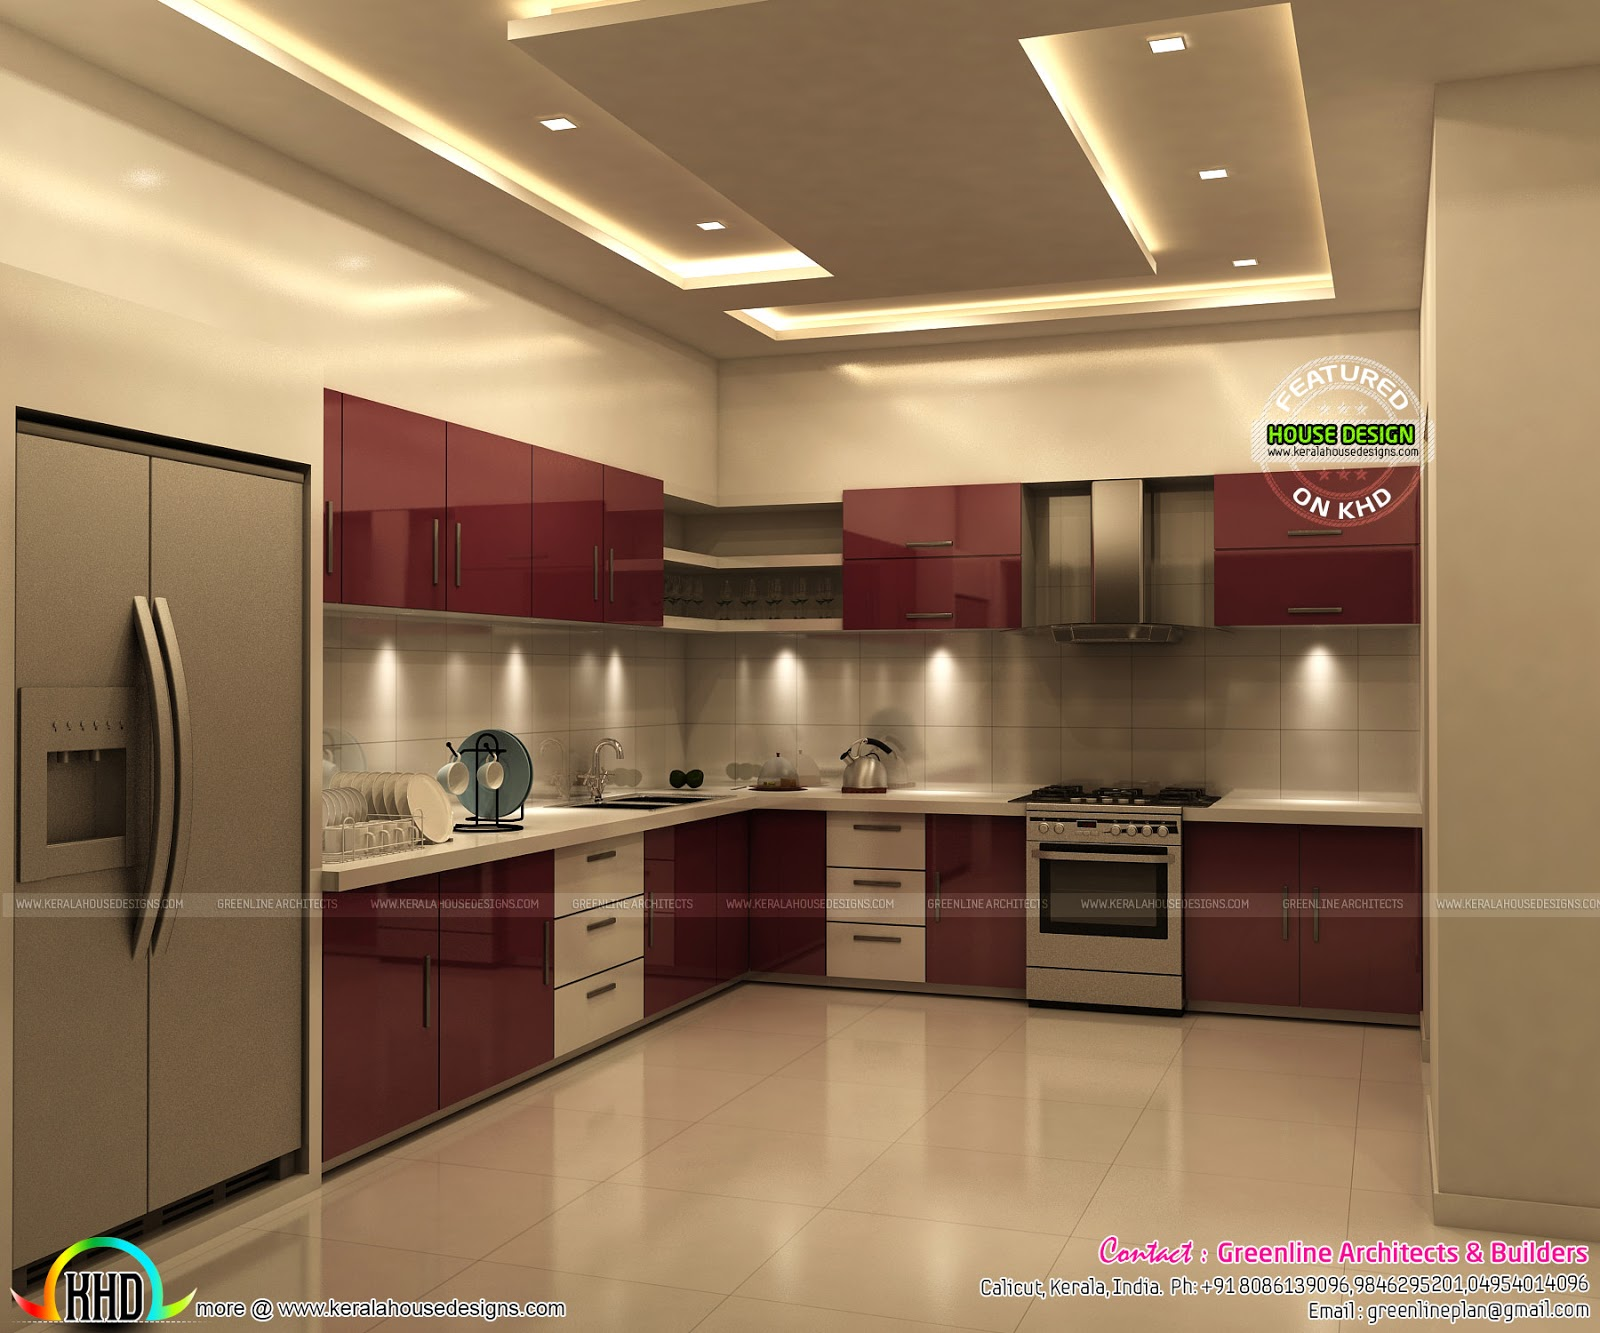 Superb kitchen and bedroom interiors kerala home design for Interior design ideas for kitchens